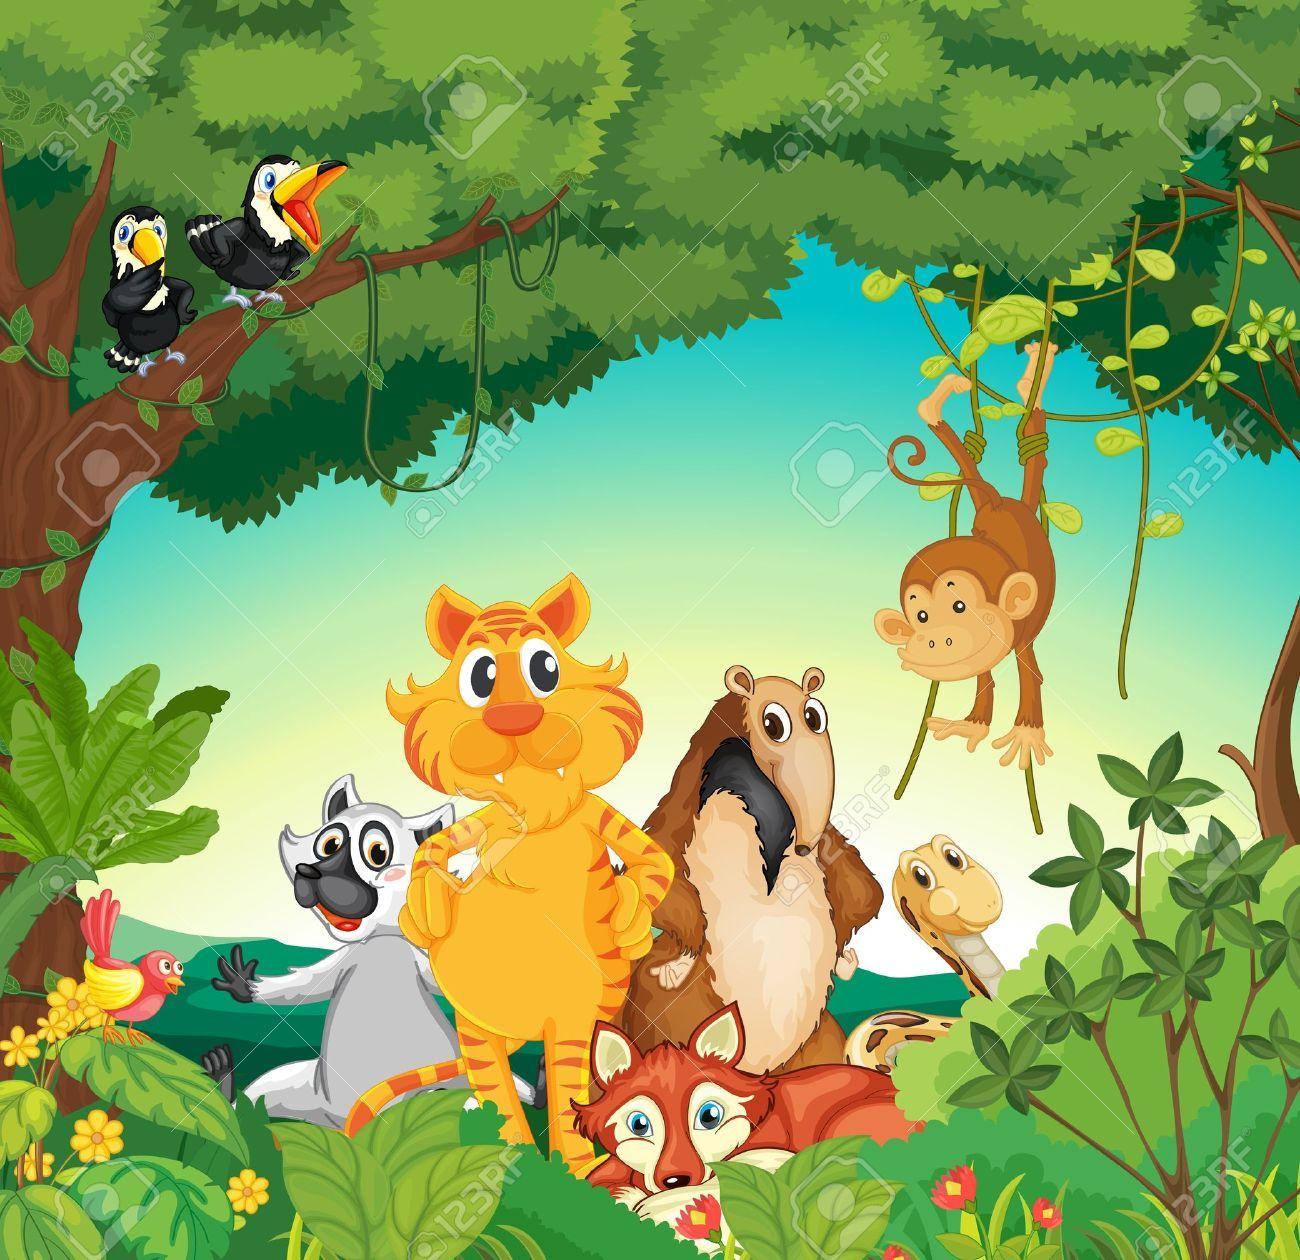 illustration of a forest scene with different animals royalty free